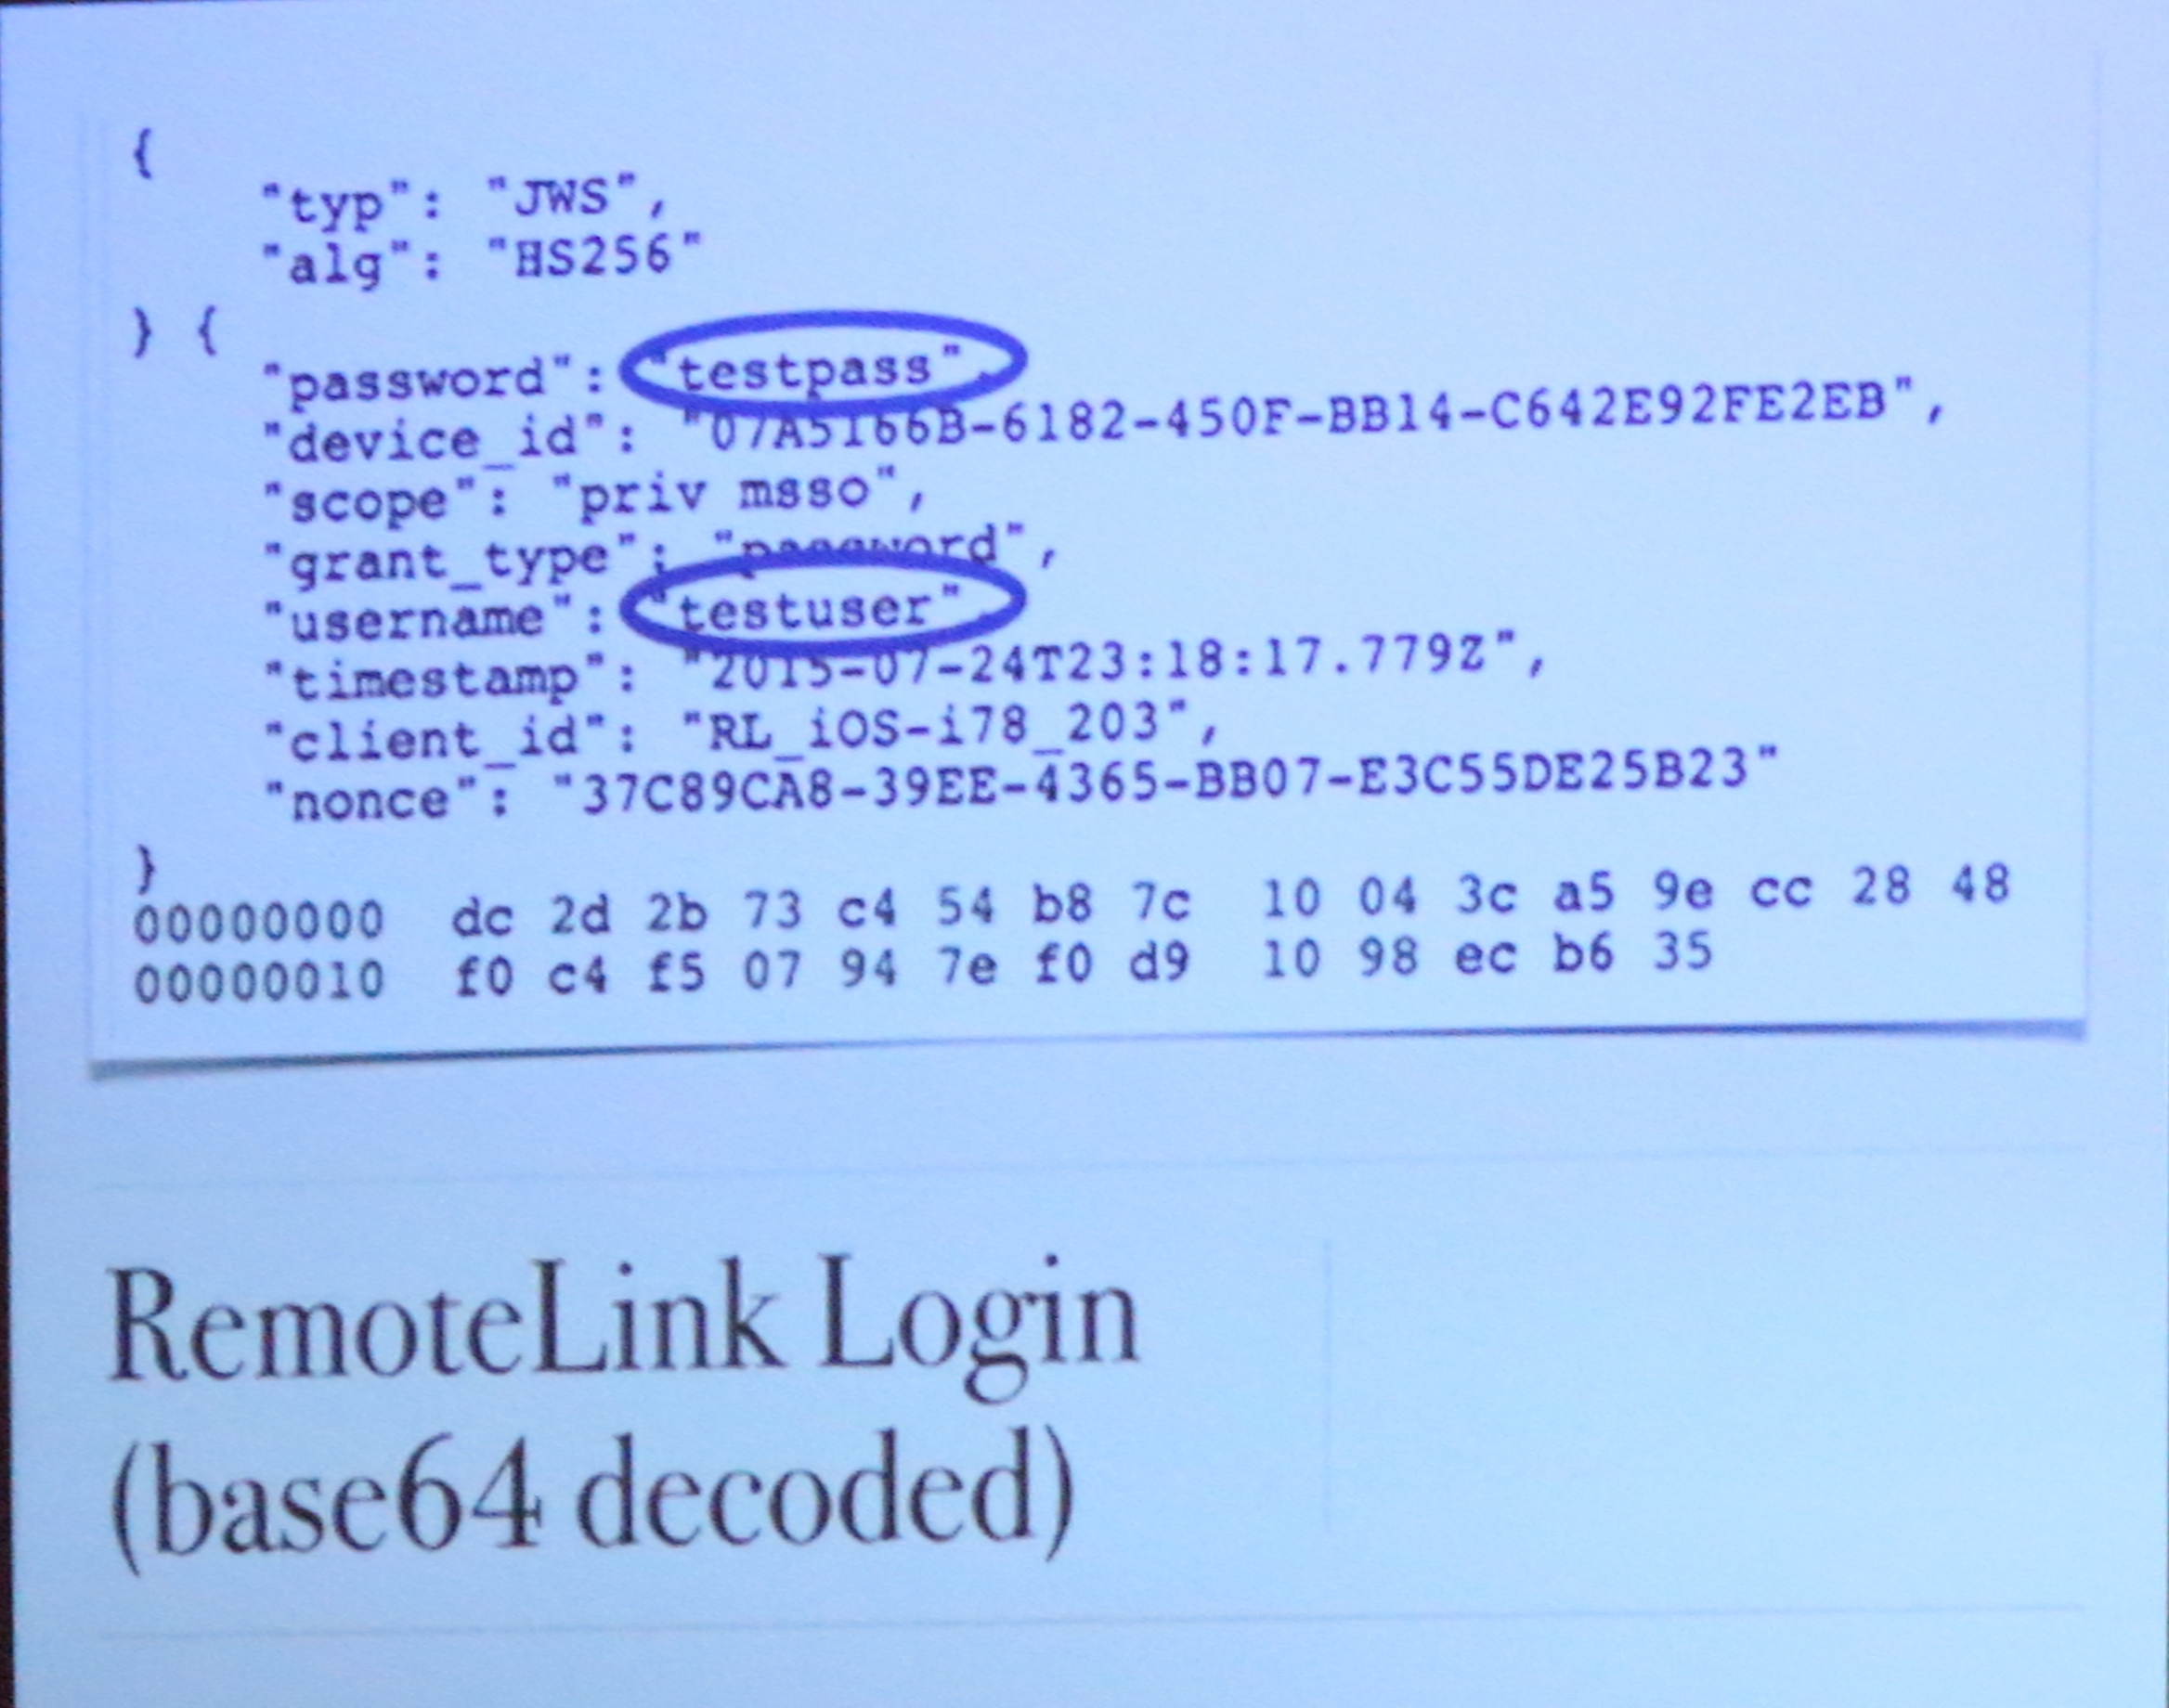 An example of decrypted RemoteLink data captured by OwnStar, from Kamkar's DefCon presentation.